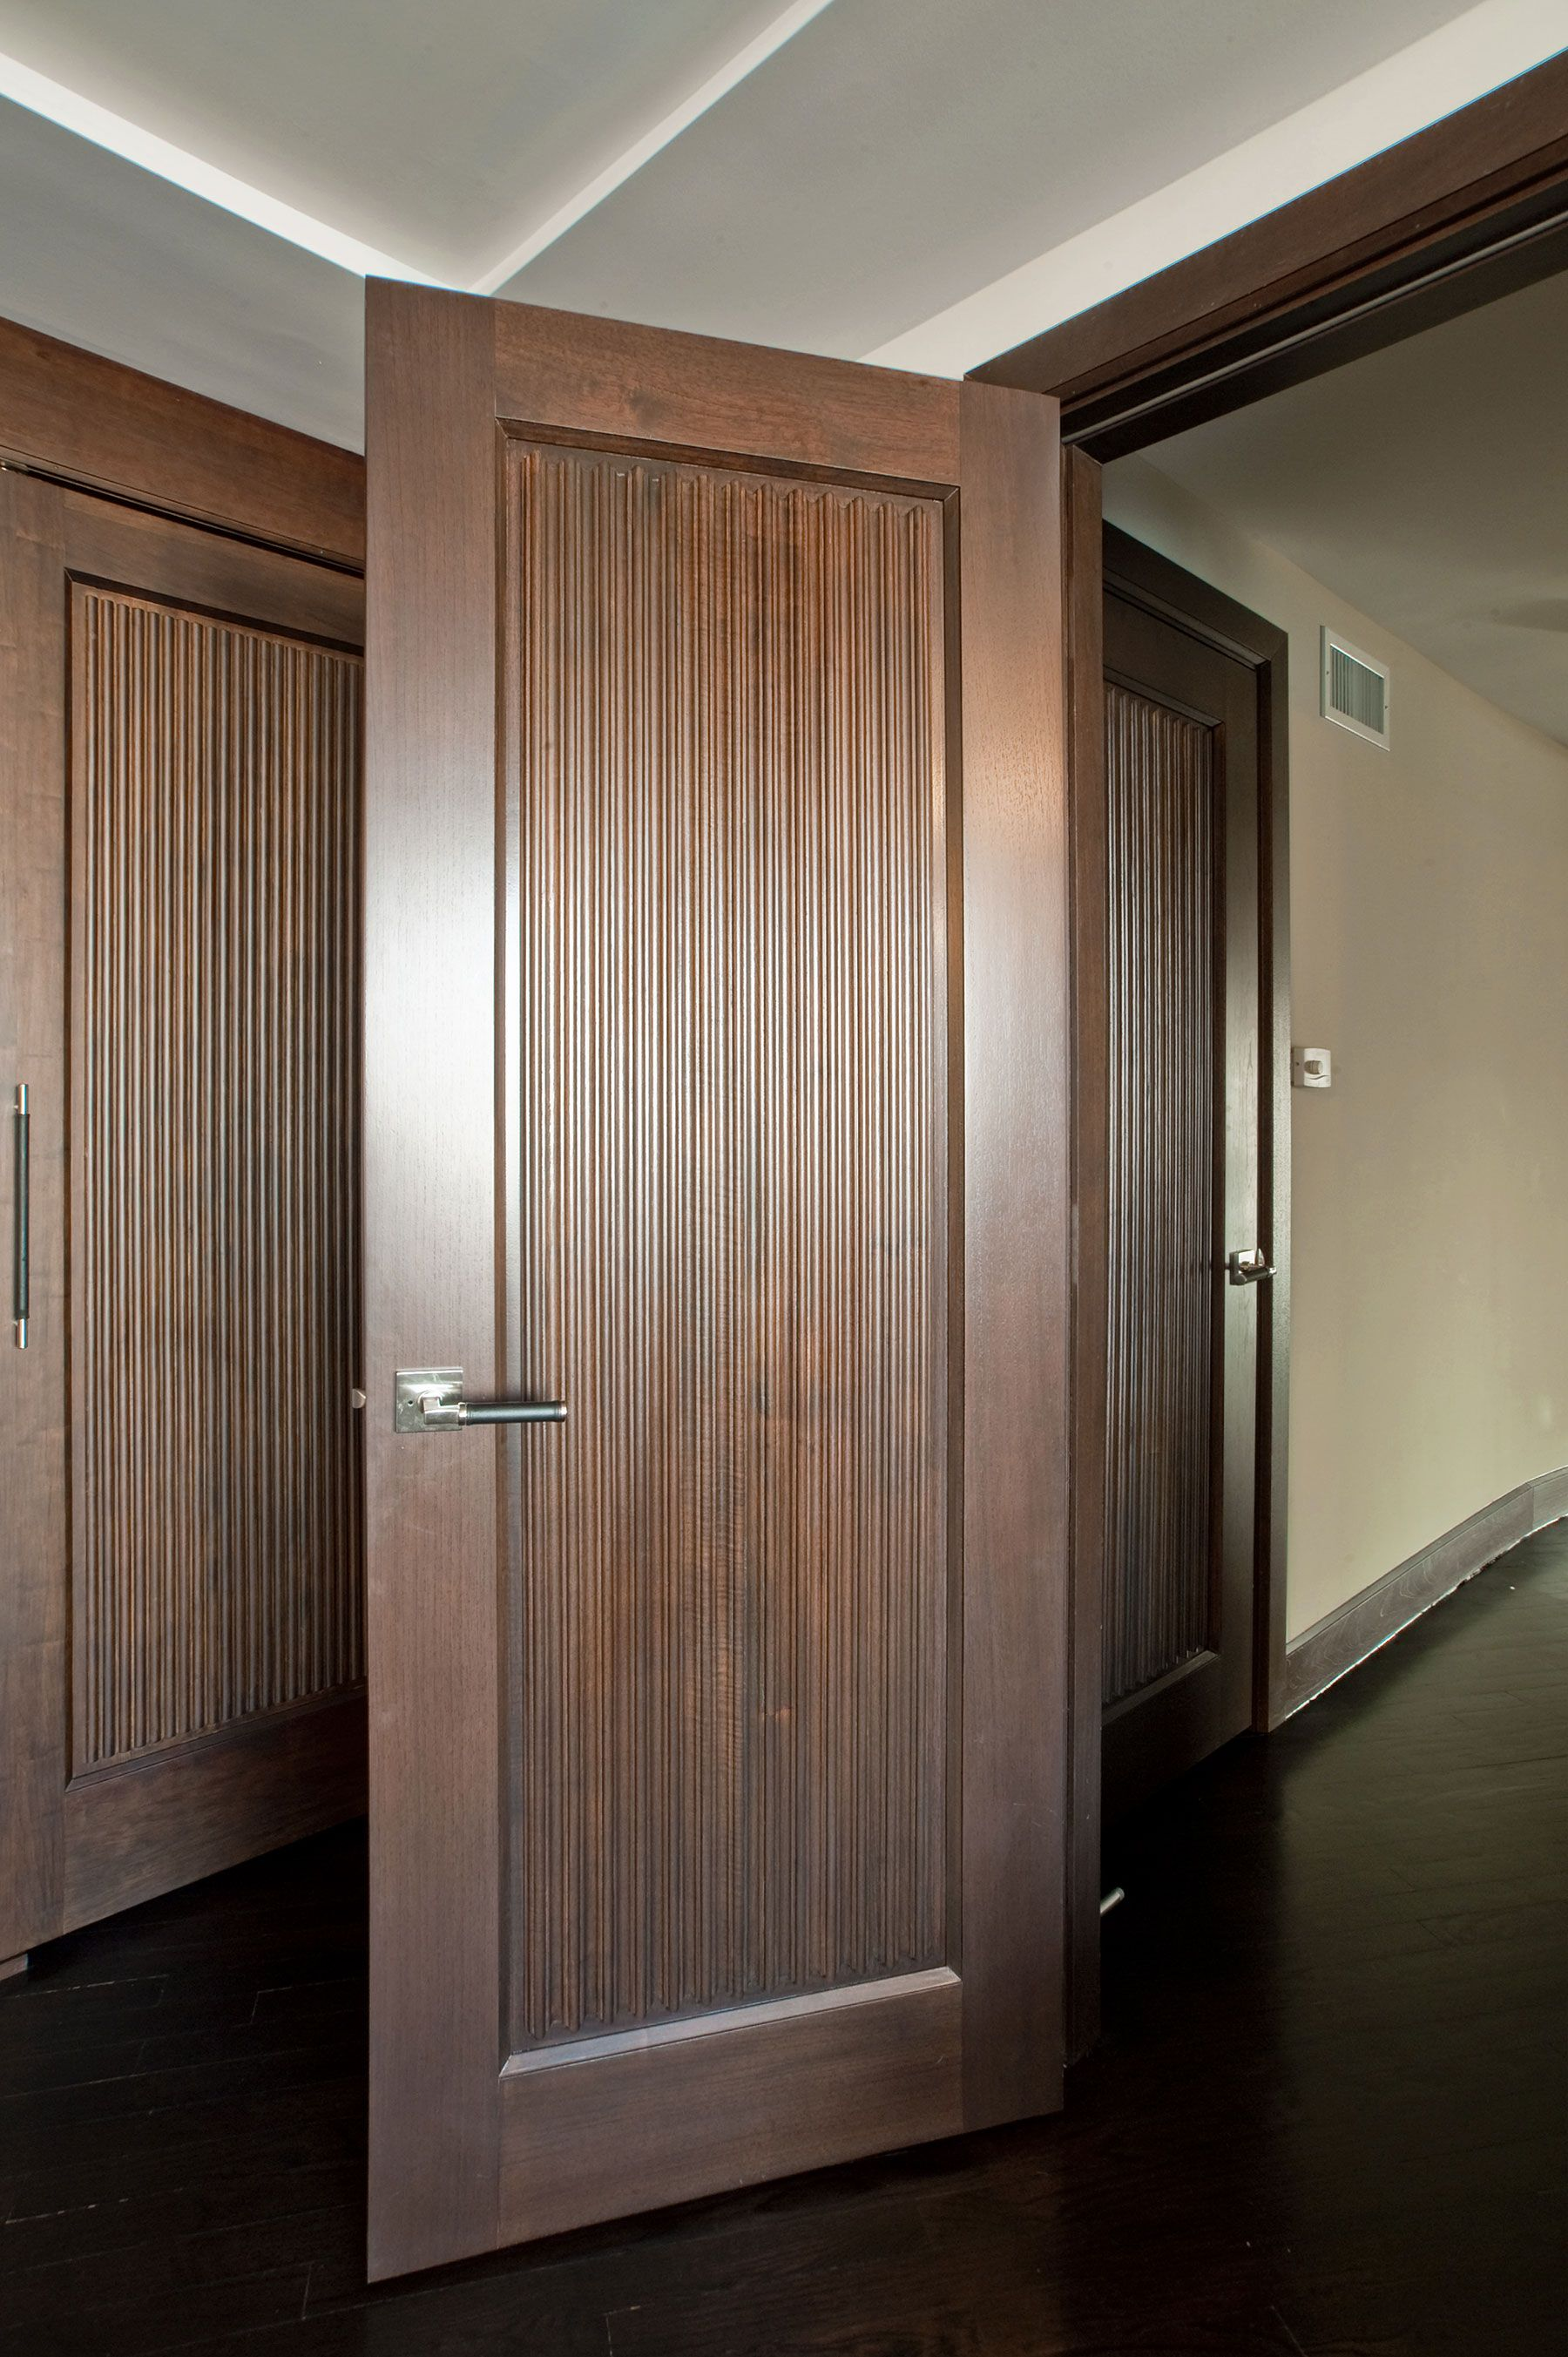 Custom Wood Interior Doors Custom Interior Solid Wood Door Custom Ridges Dbi 580 Glenview Ha Doors Interior Modern Solid Core Interior Doors Doors Interior